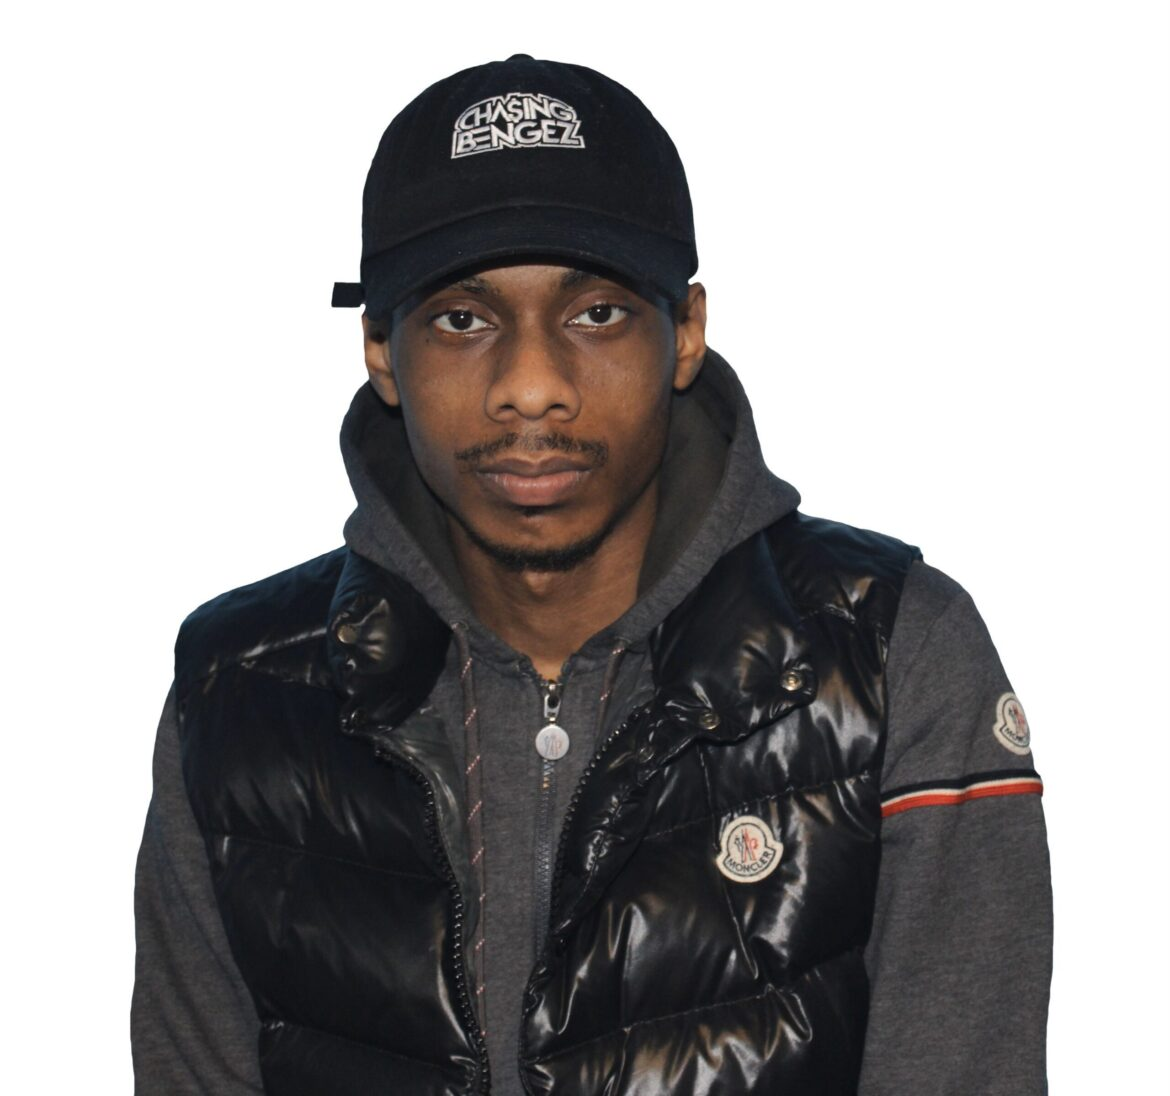 Sha Bengez Is Making A Impact With His Independent Record Label Chasing Bengez LLC & UK Based Music Producer PRODBYLEWIS